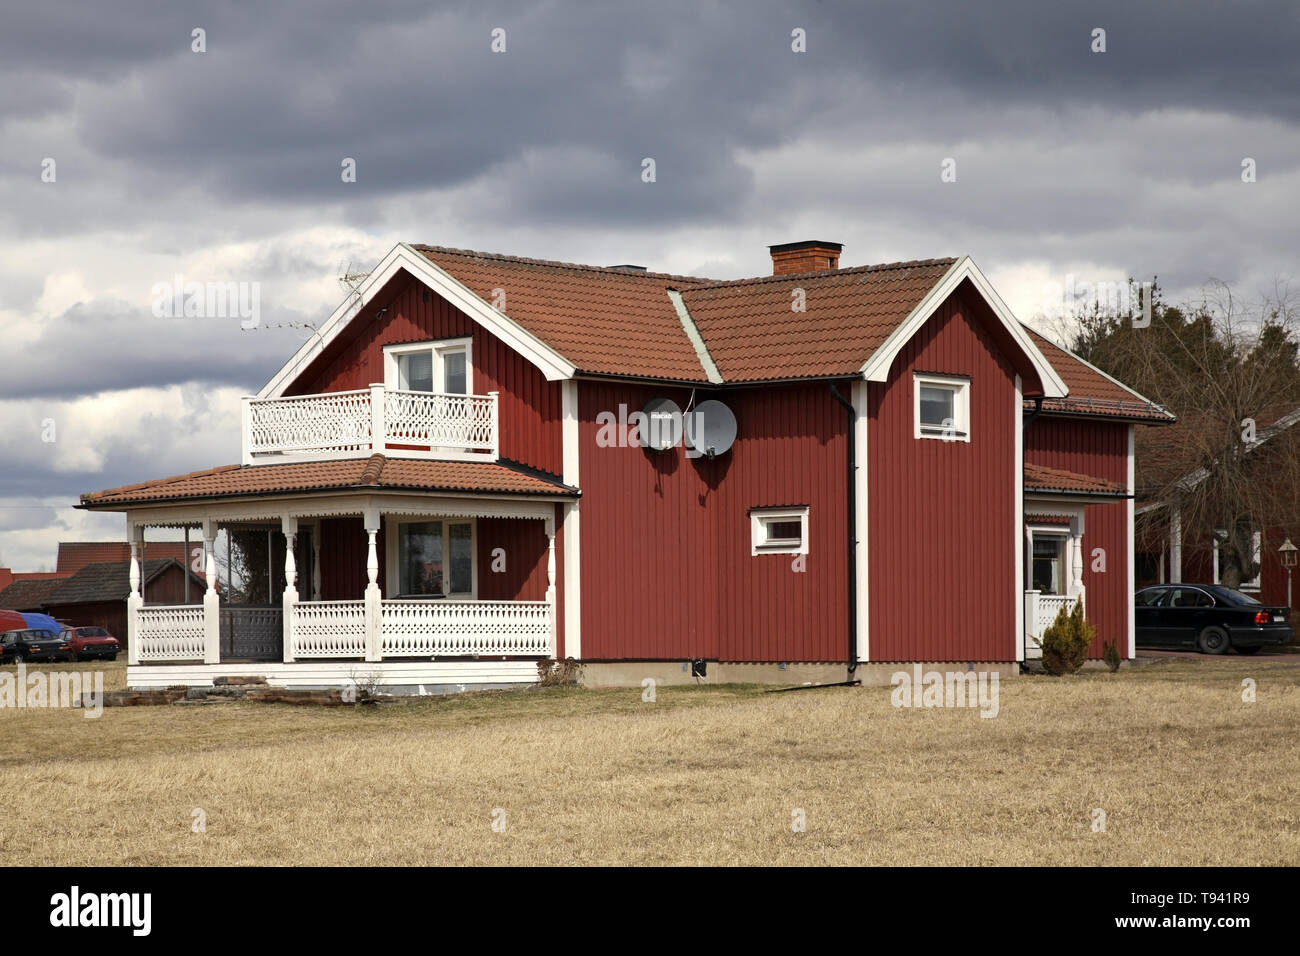 Building in Nusnas. Dalarna county. Sweden - Stock Image